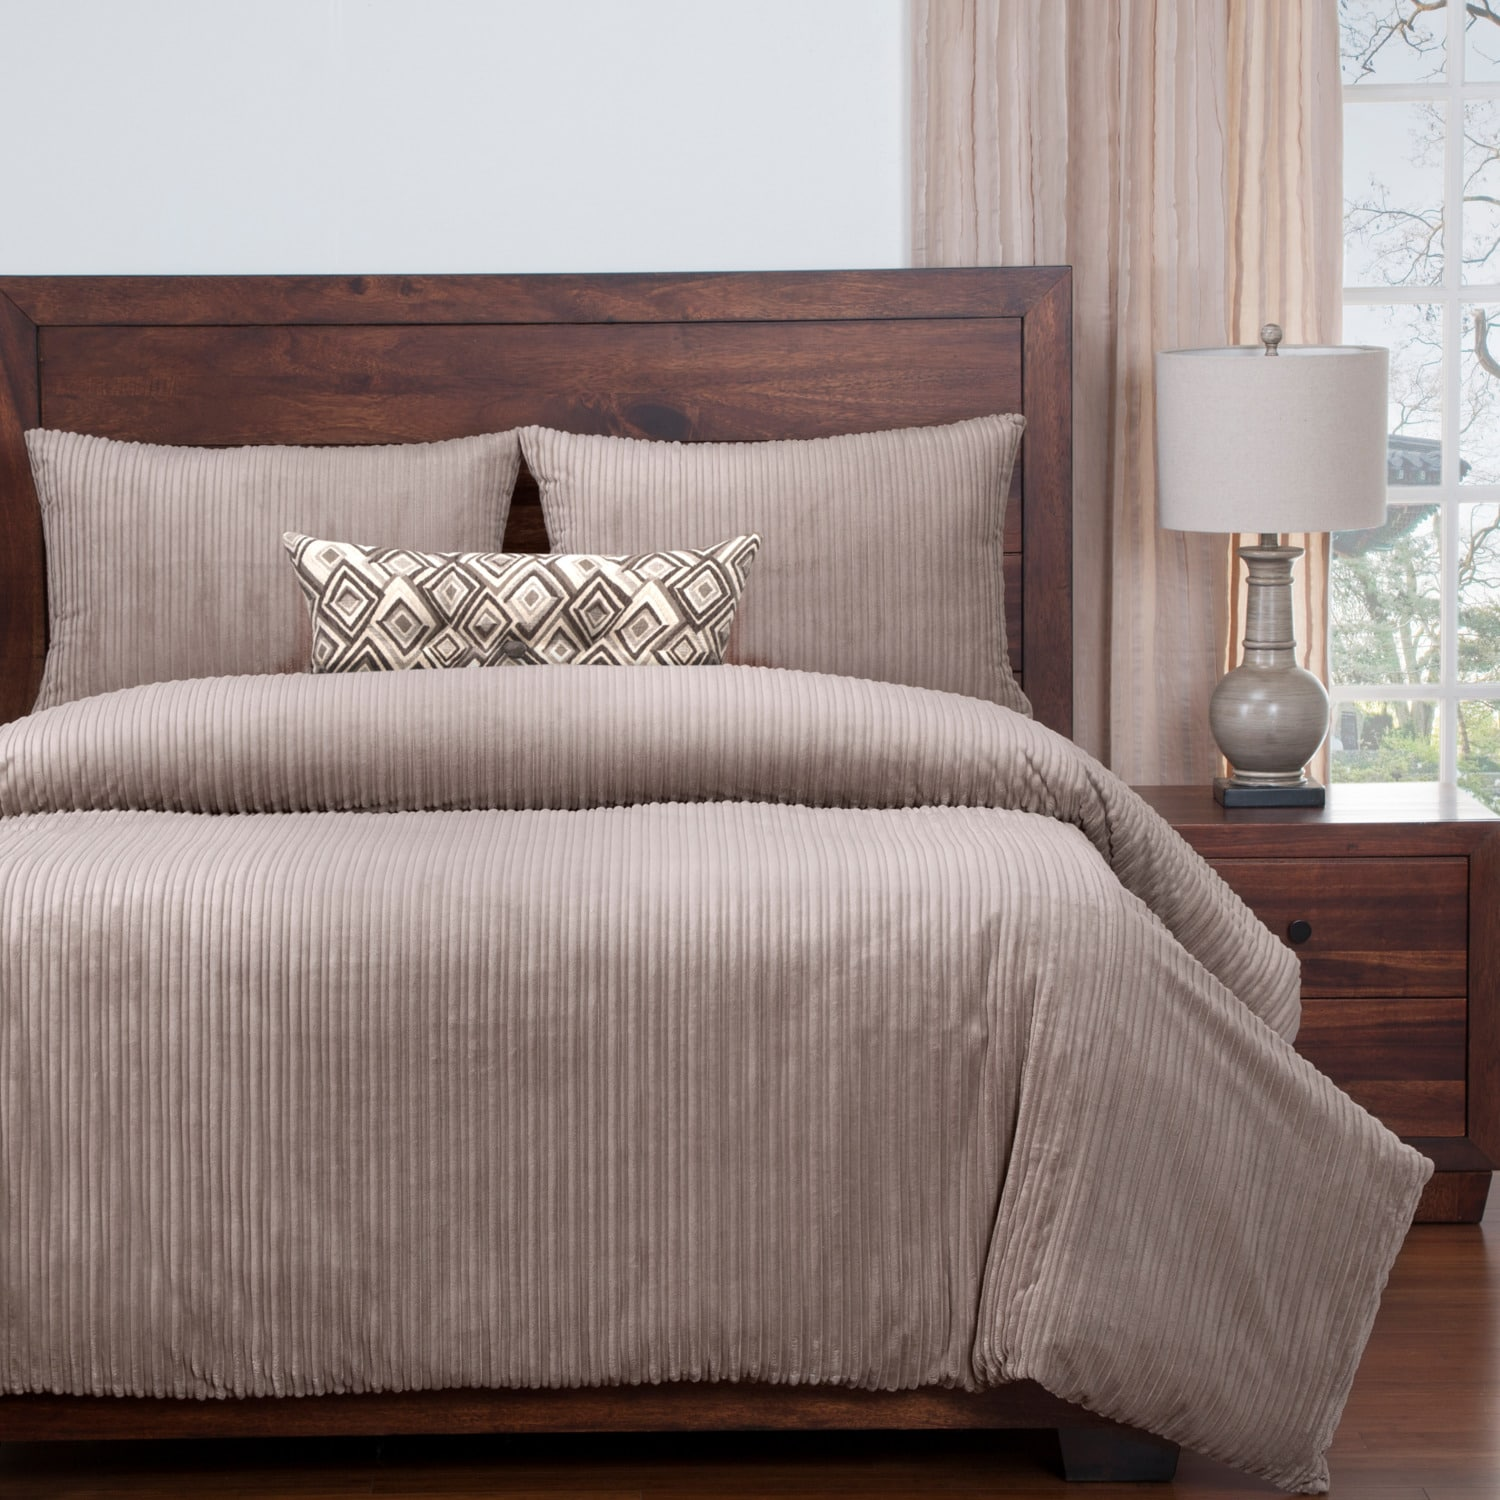 Downy Taupe 4-Piece Full Duvet Cover Set